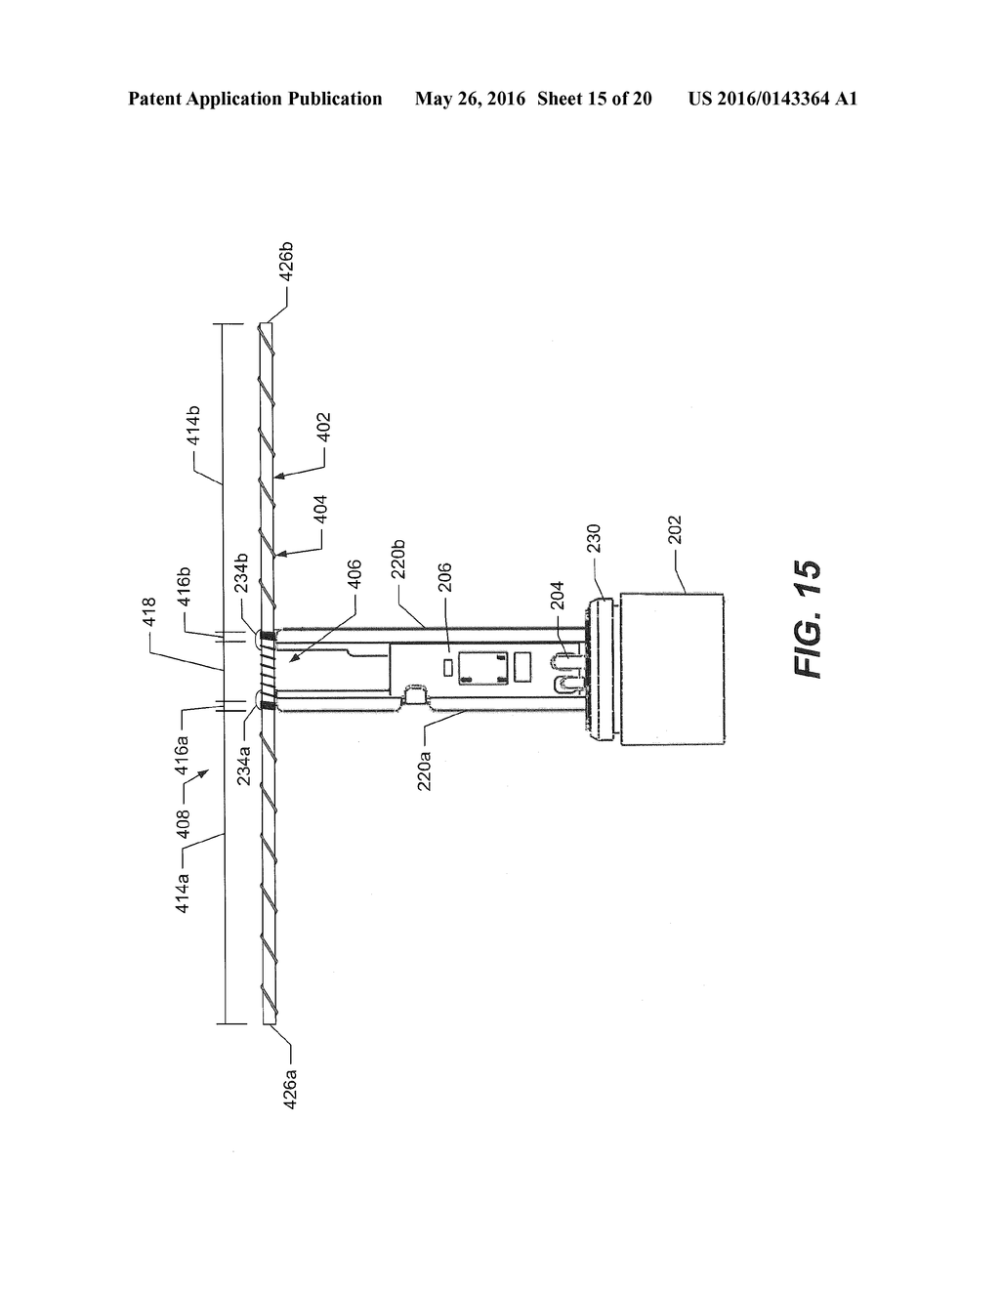 medium resolution of atomizer for an aerosol delivery device formed from a continuously extending wire and related input cartridge and method diagram schematic and image